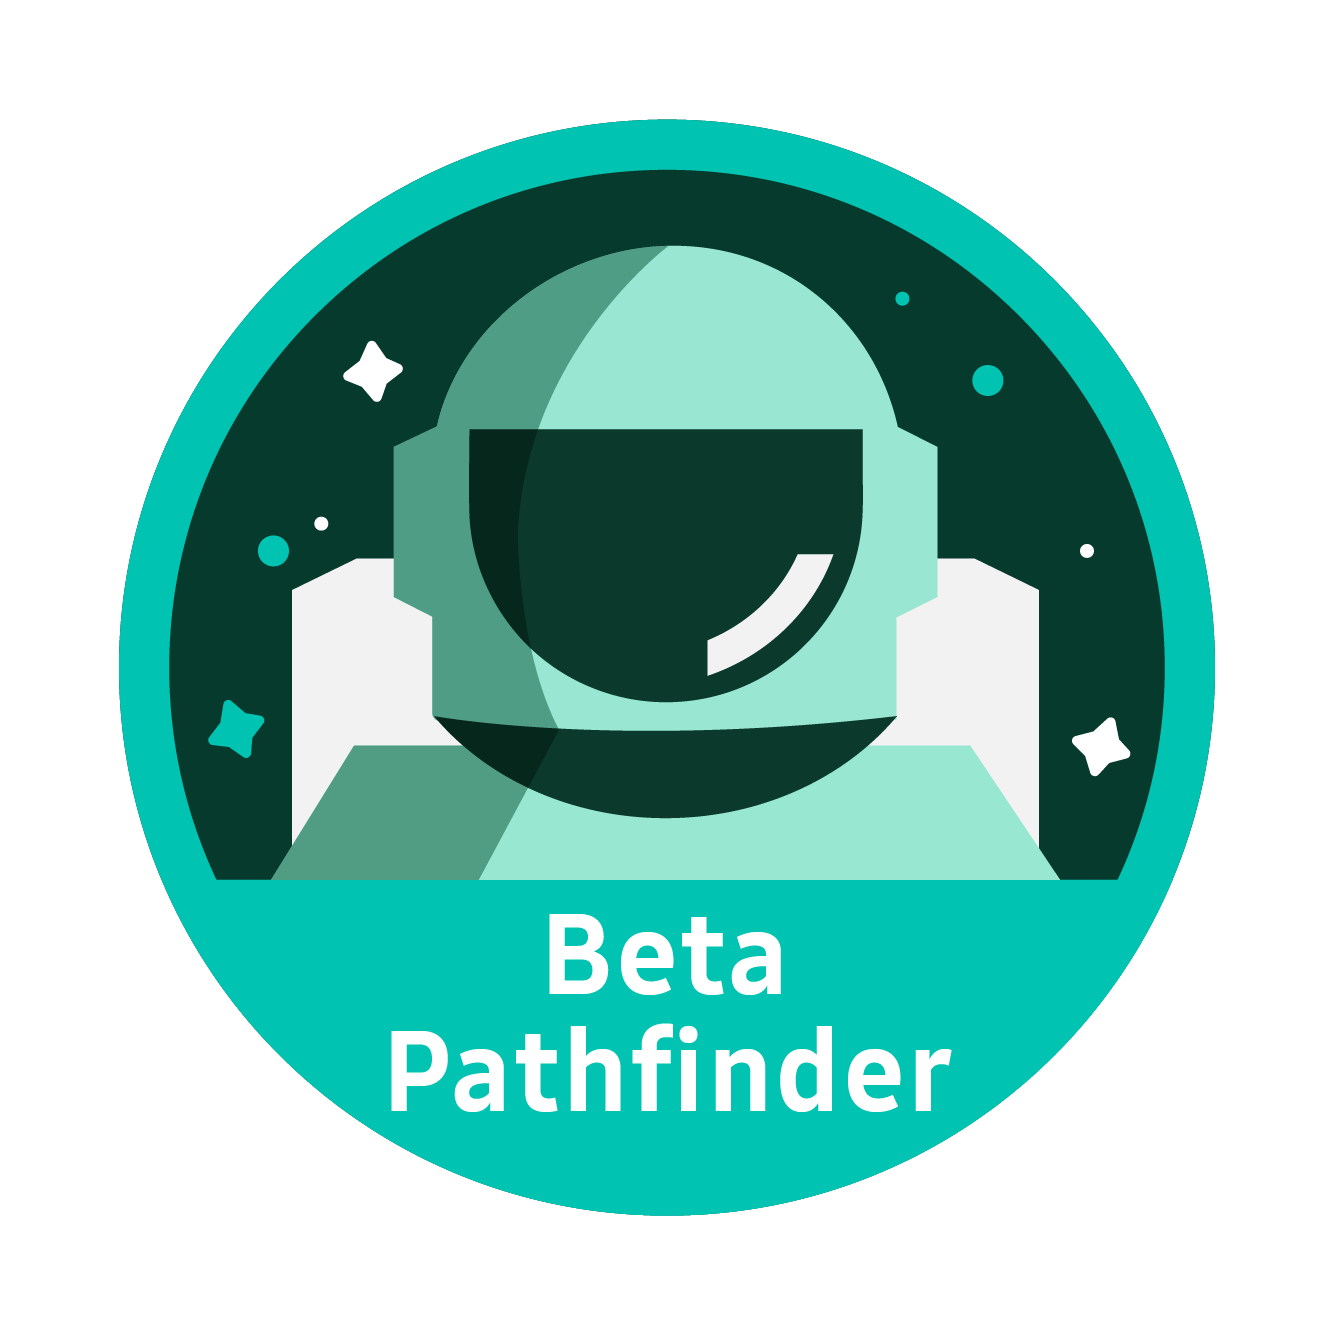 Beta Pathfinder